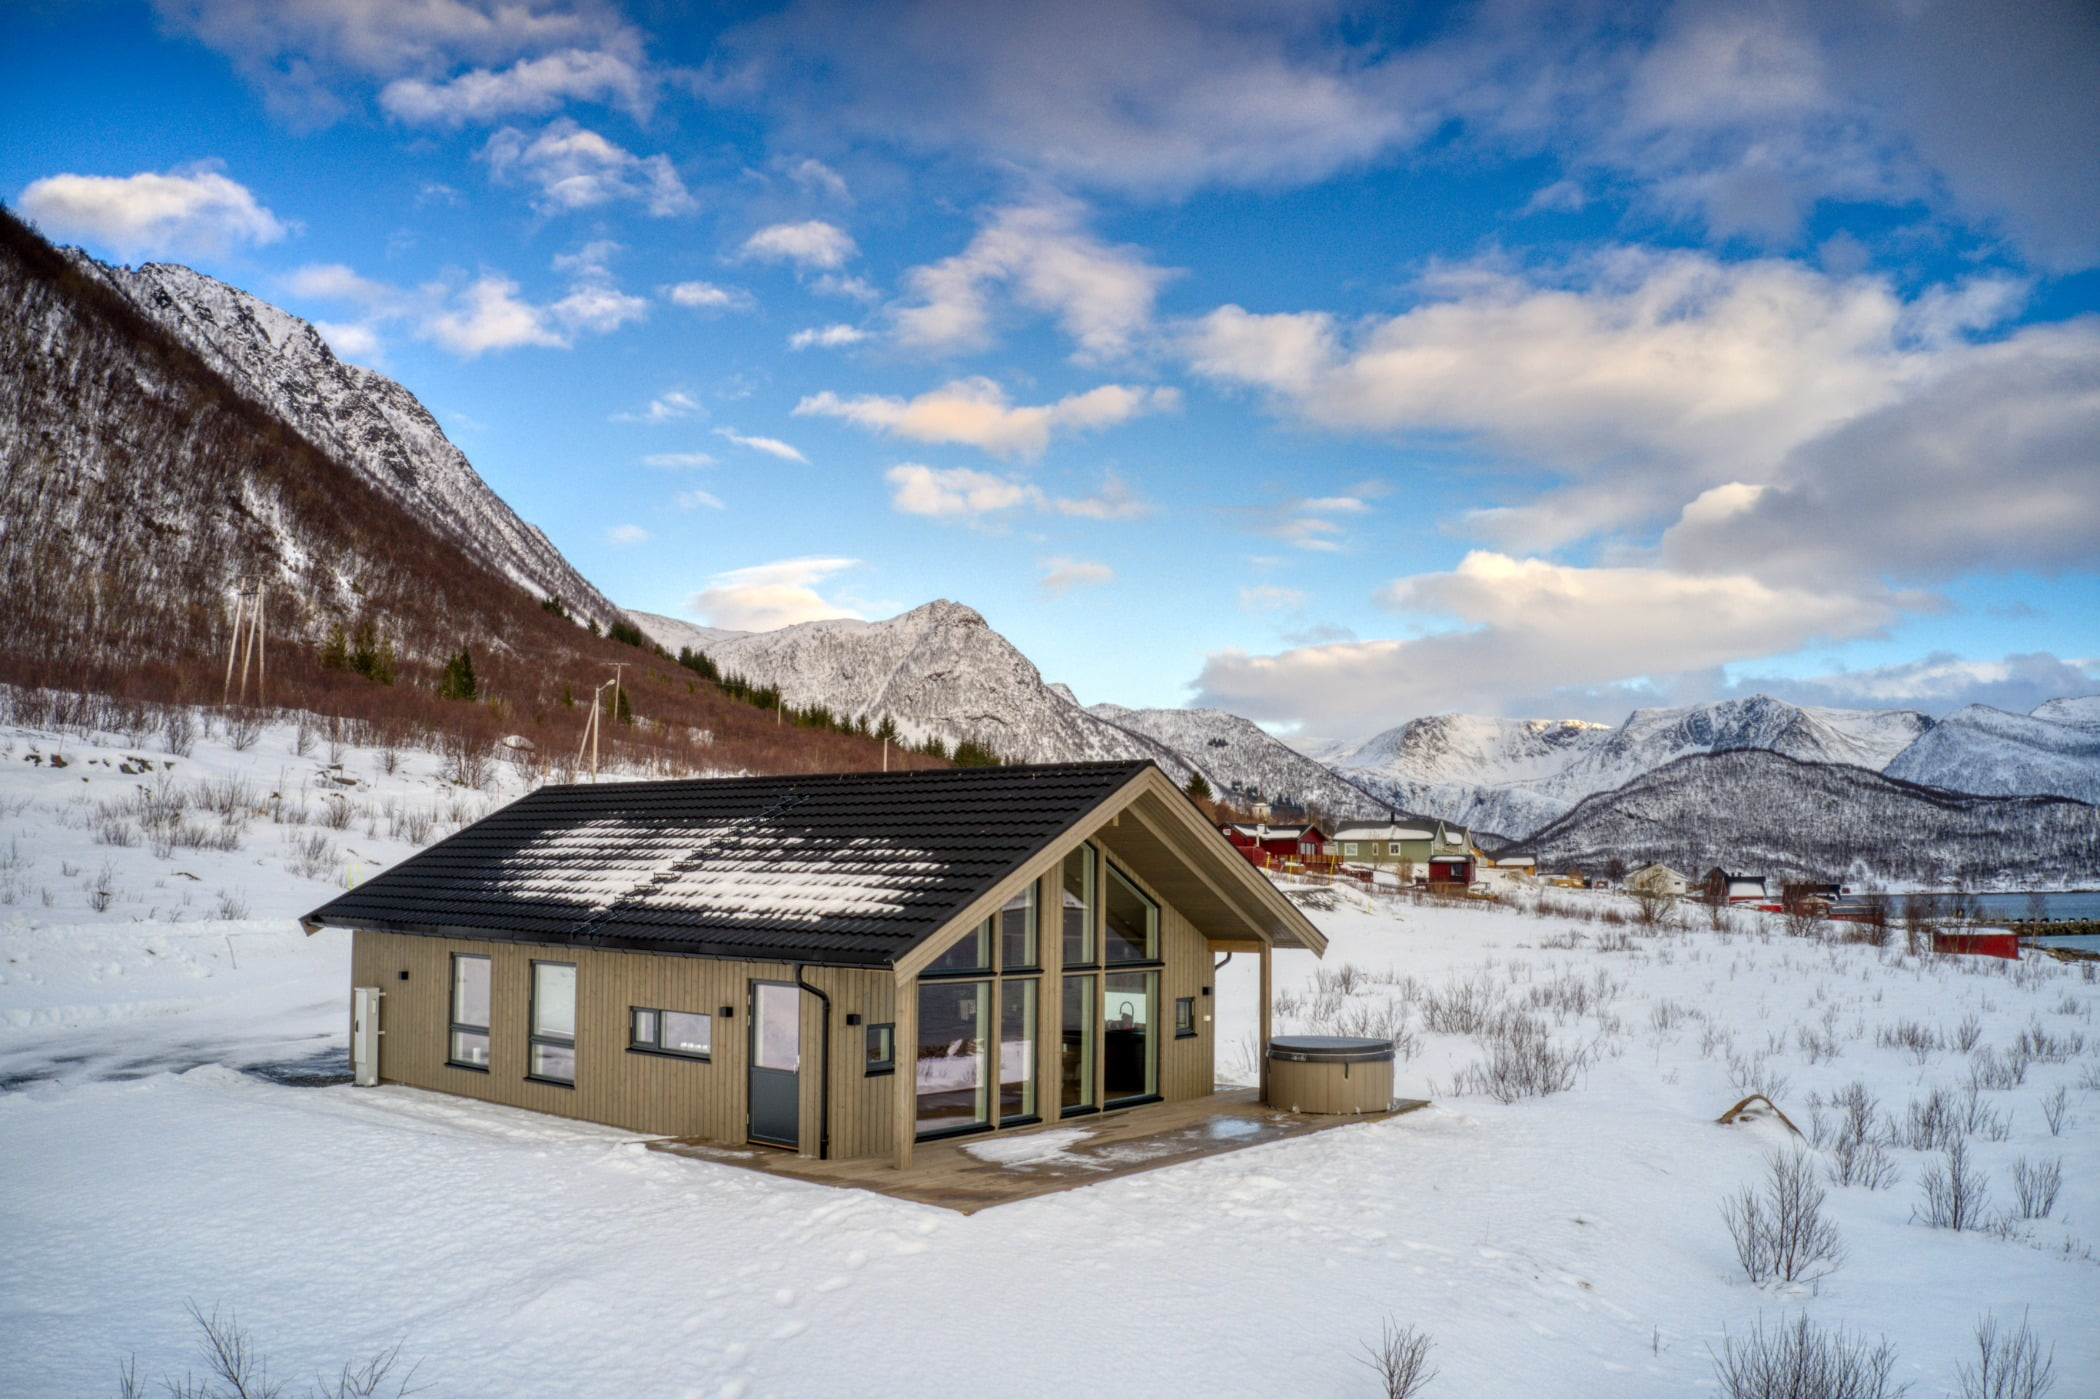 Natural landscape, Cloud, Sky, Mountain, Snow, Property, Building, Slope, House, Wood